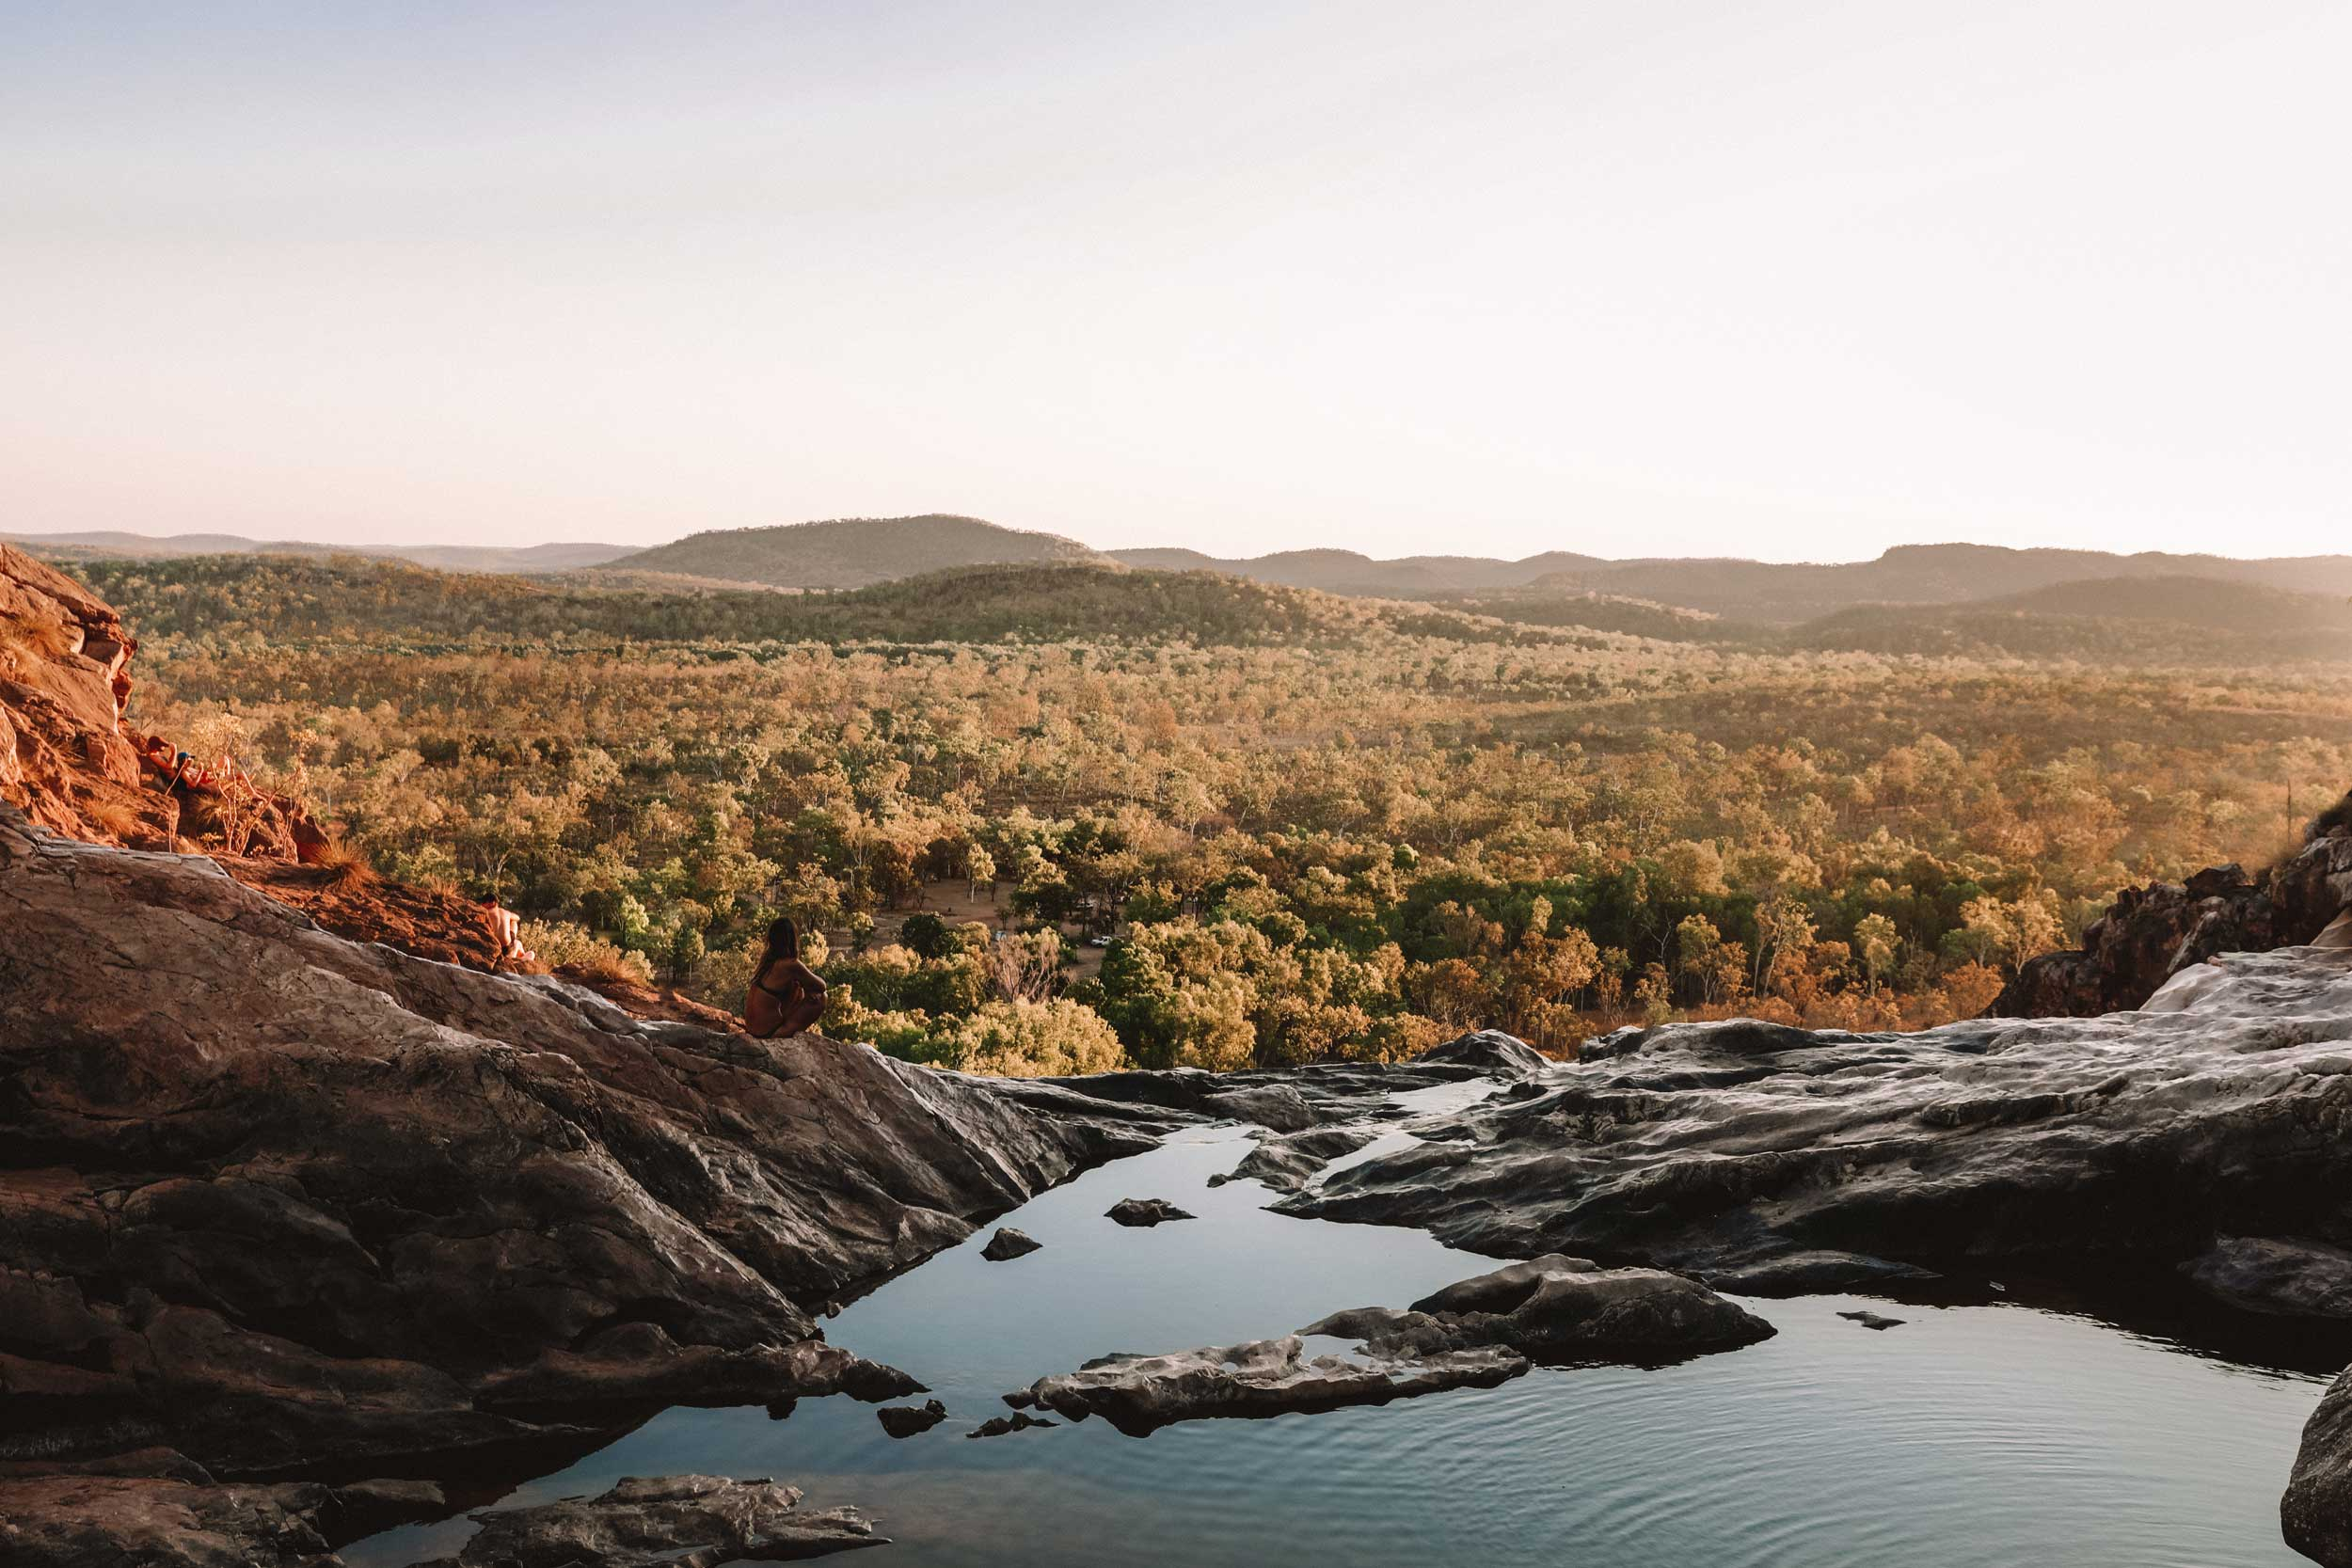 Woman sitting at edge of rock pool above the landscape, Australia